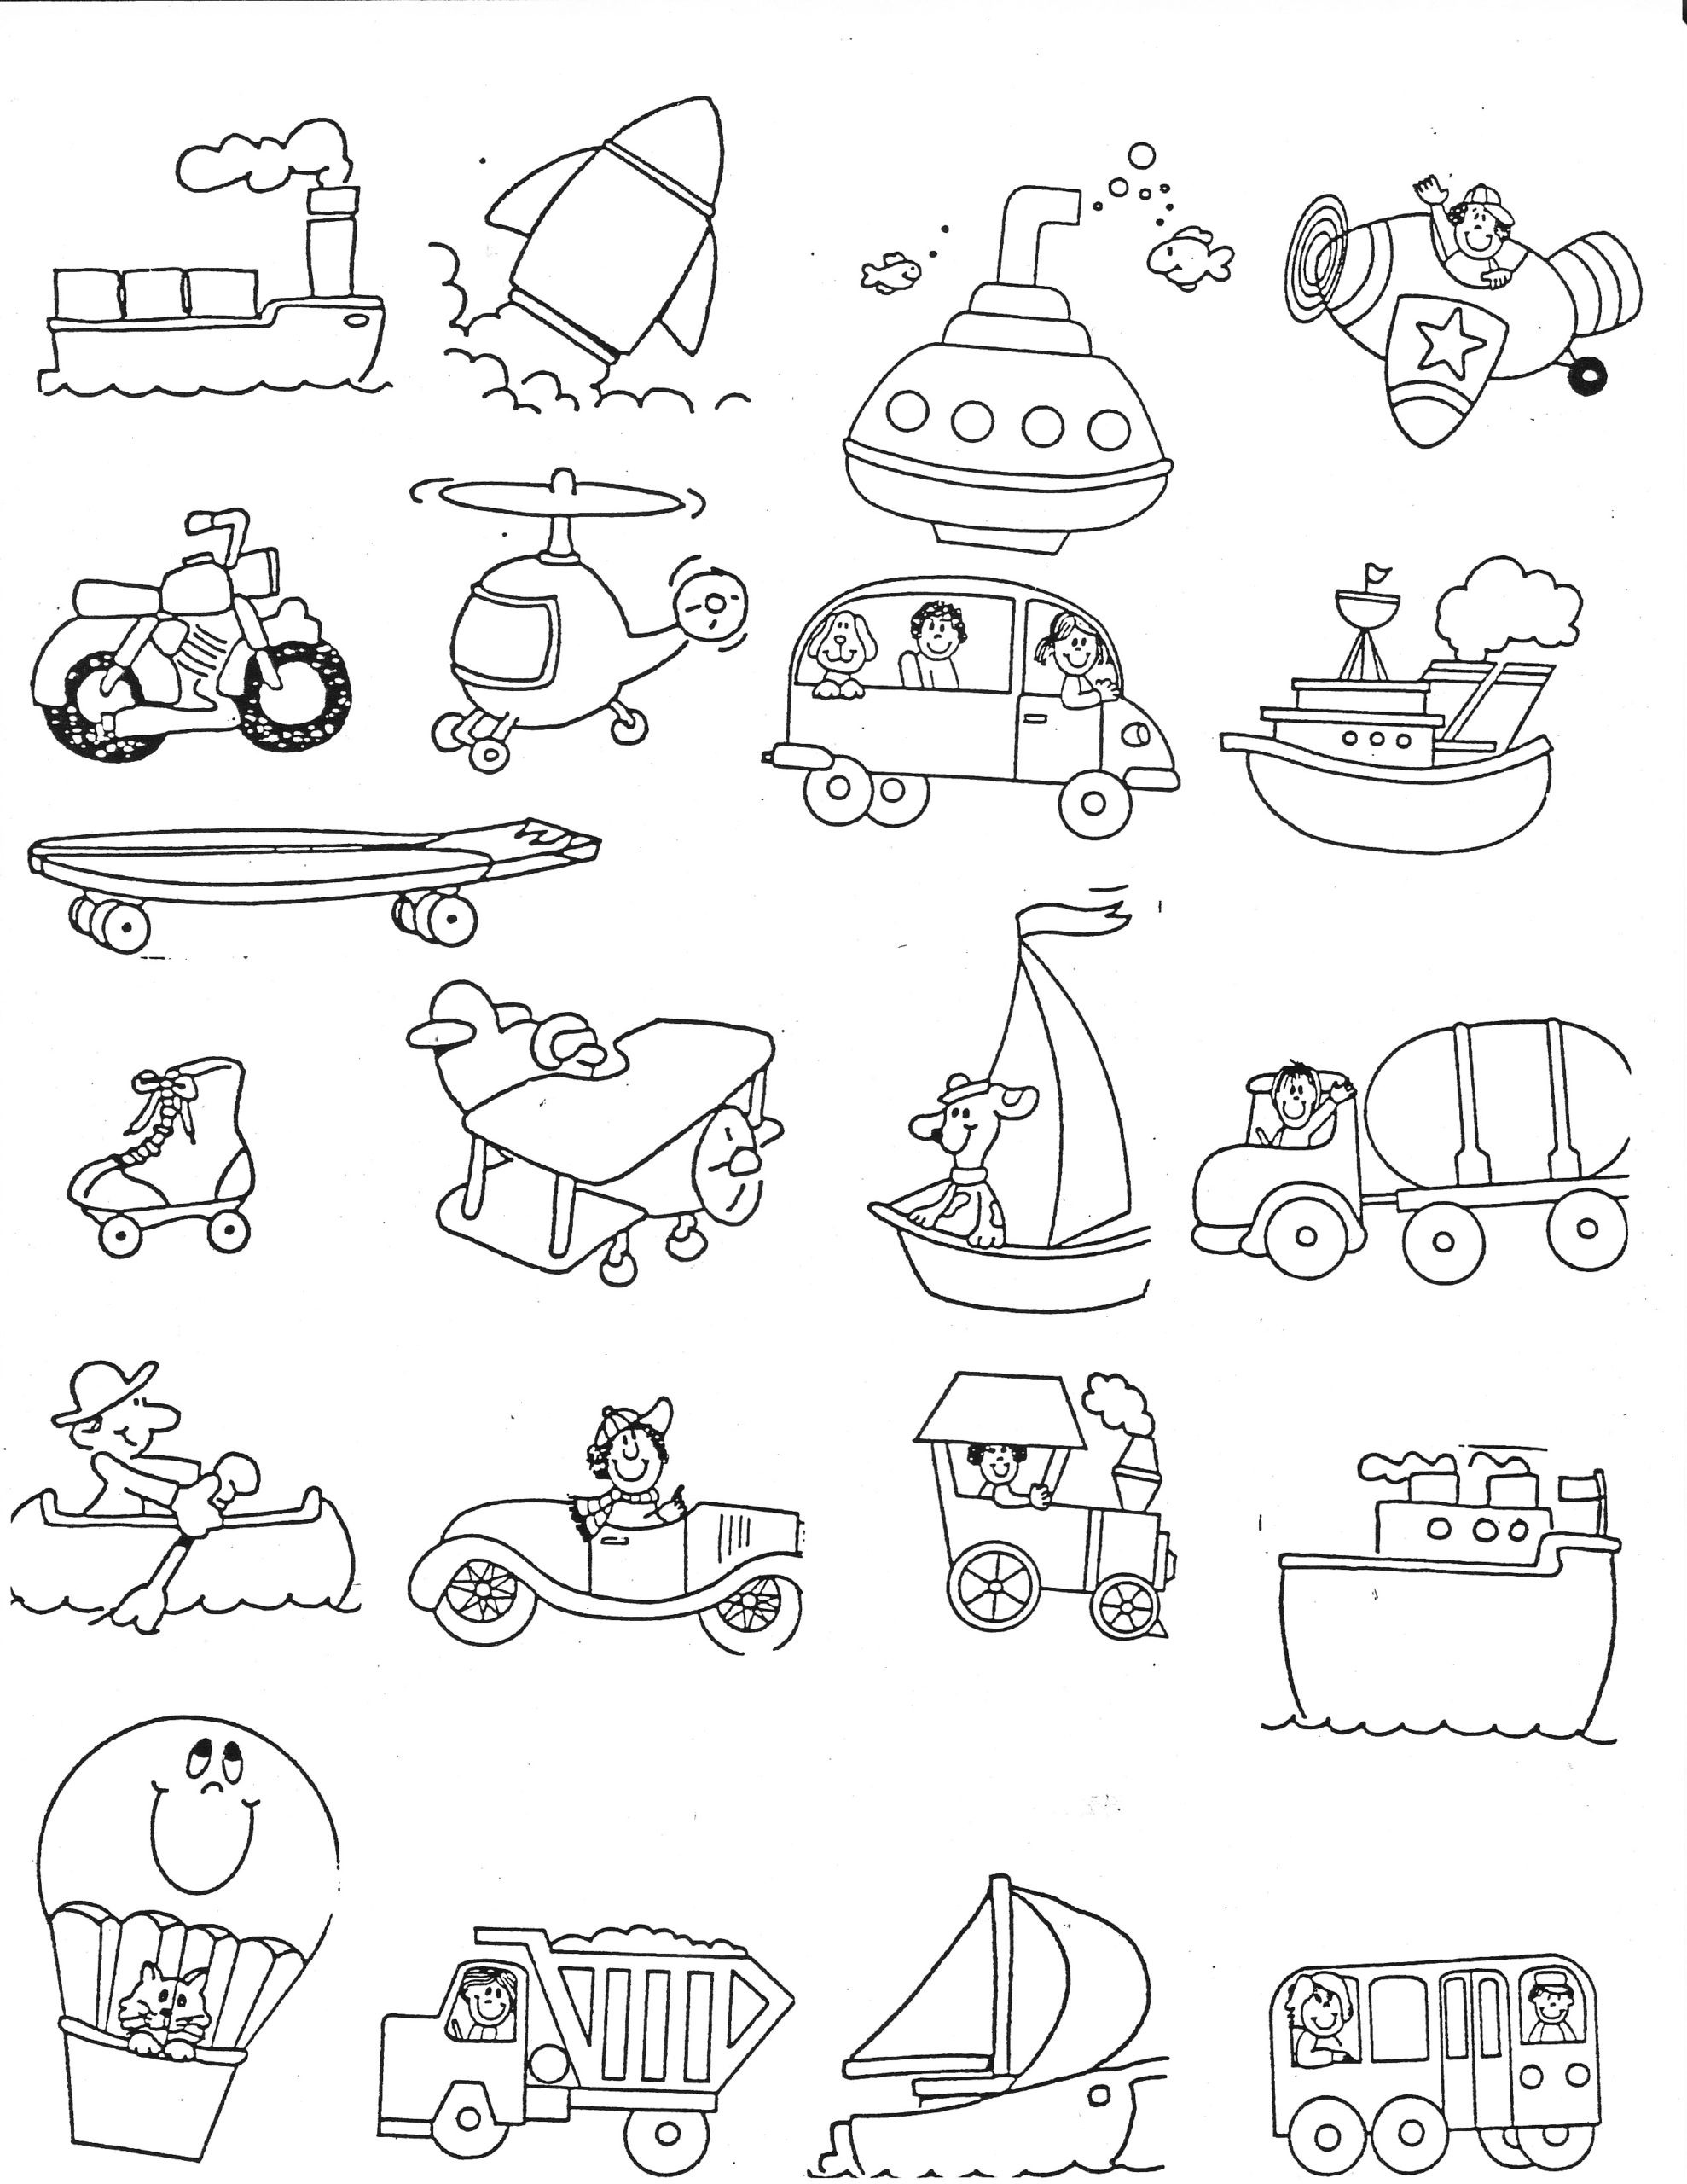 Force and Motion Printable Worksheets Transportation Kindergarten Nana force and Motion Worksheets